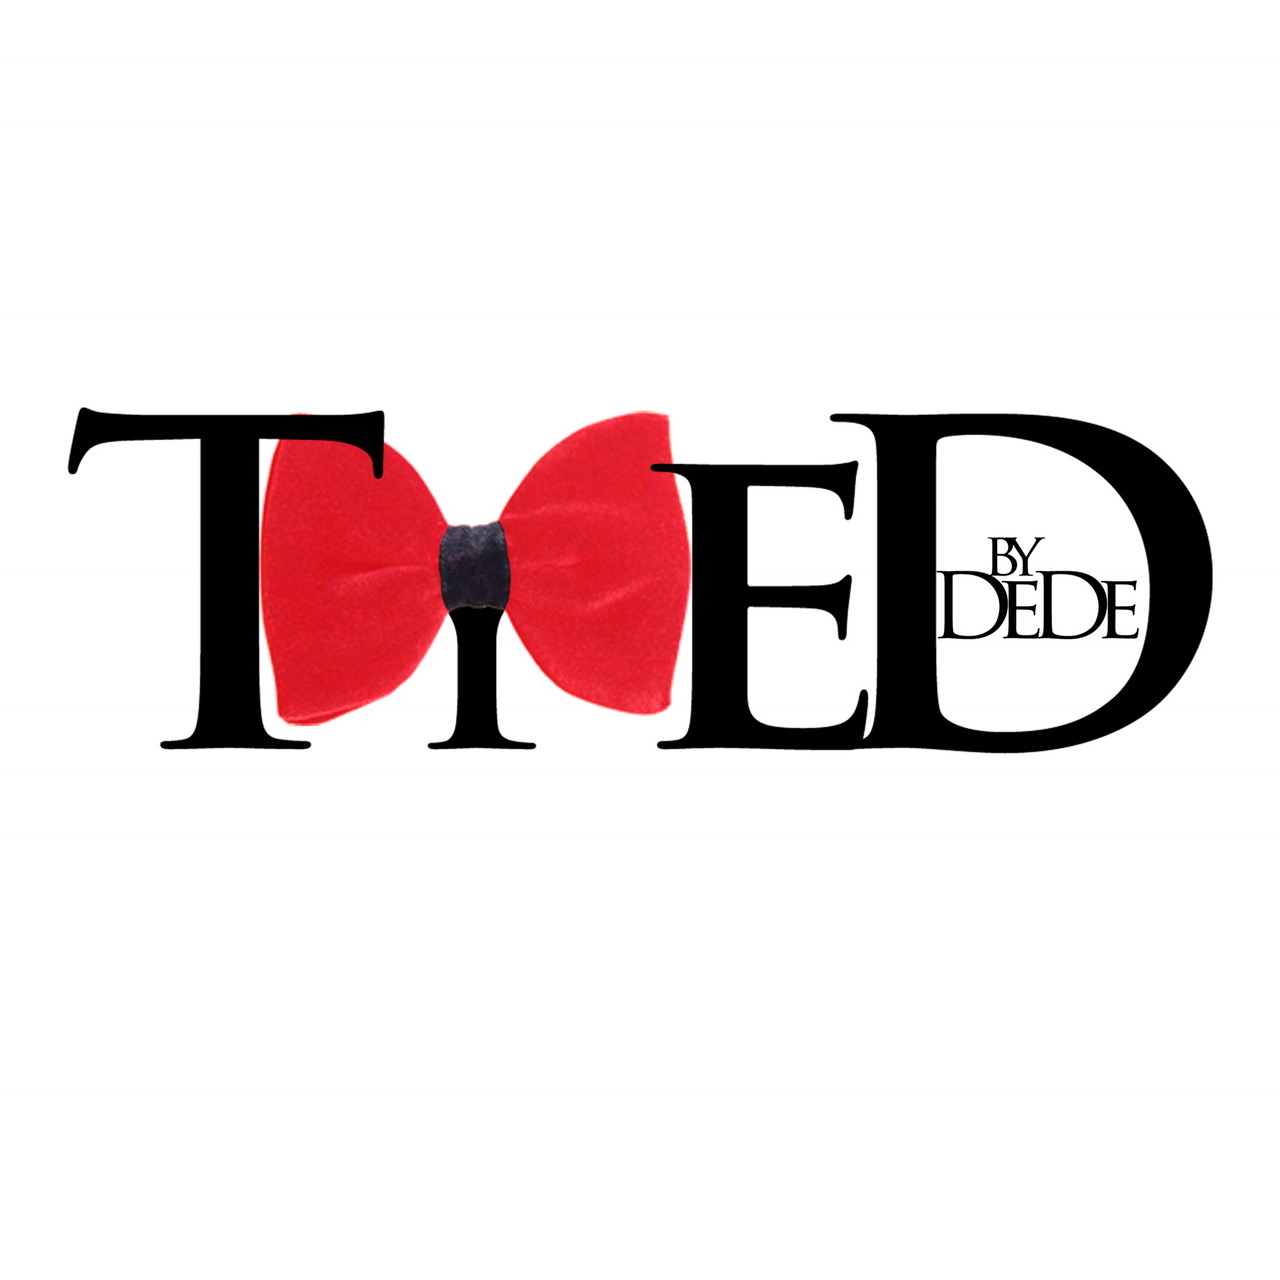 Tyed By DeDe